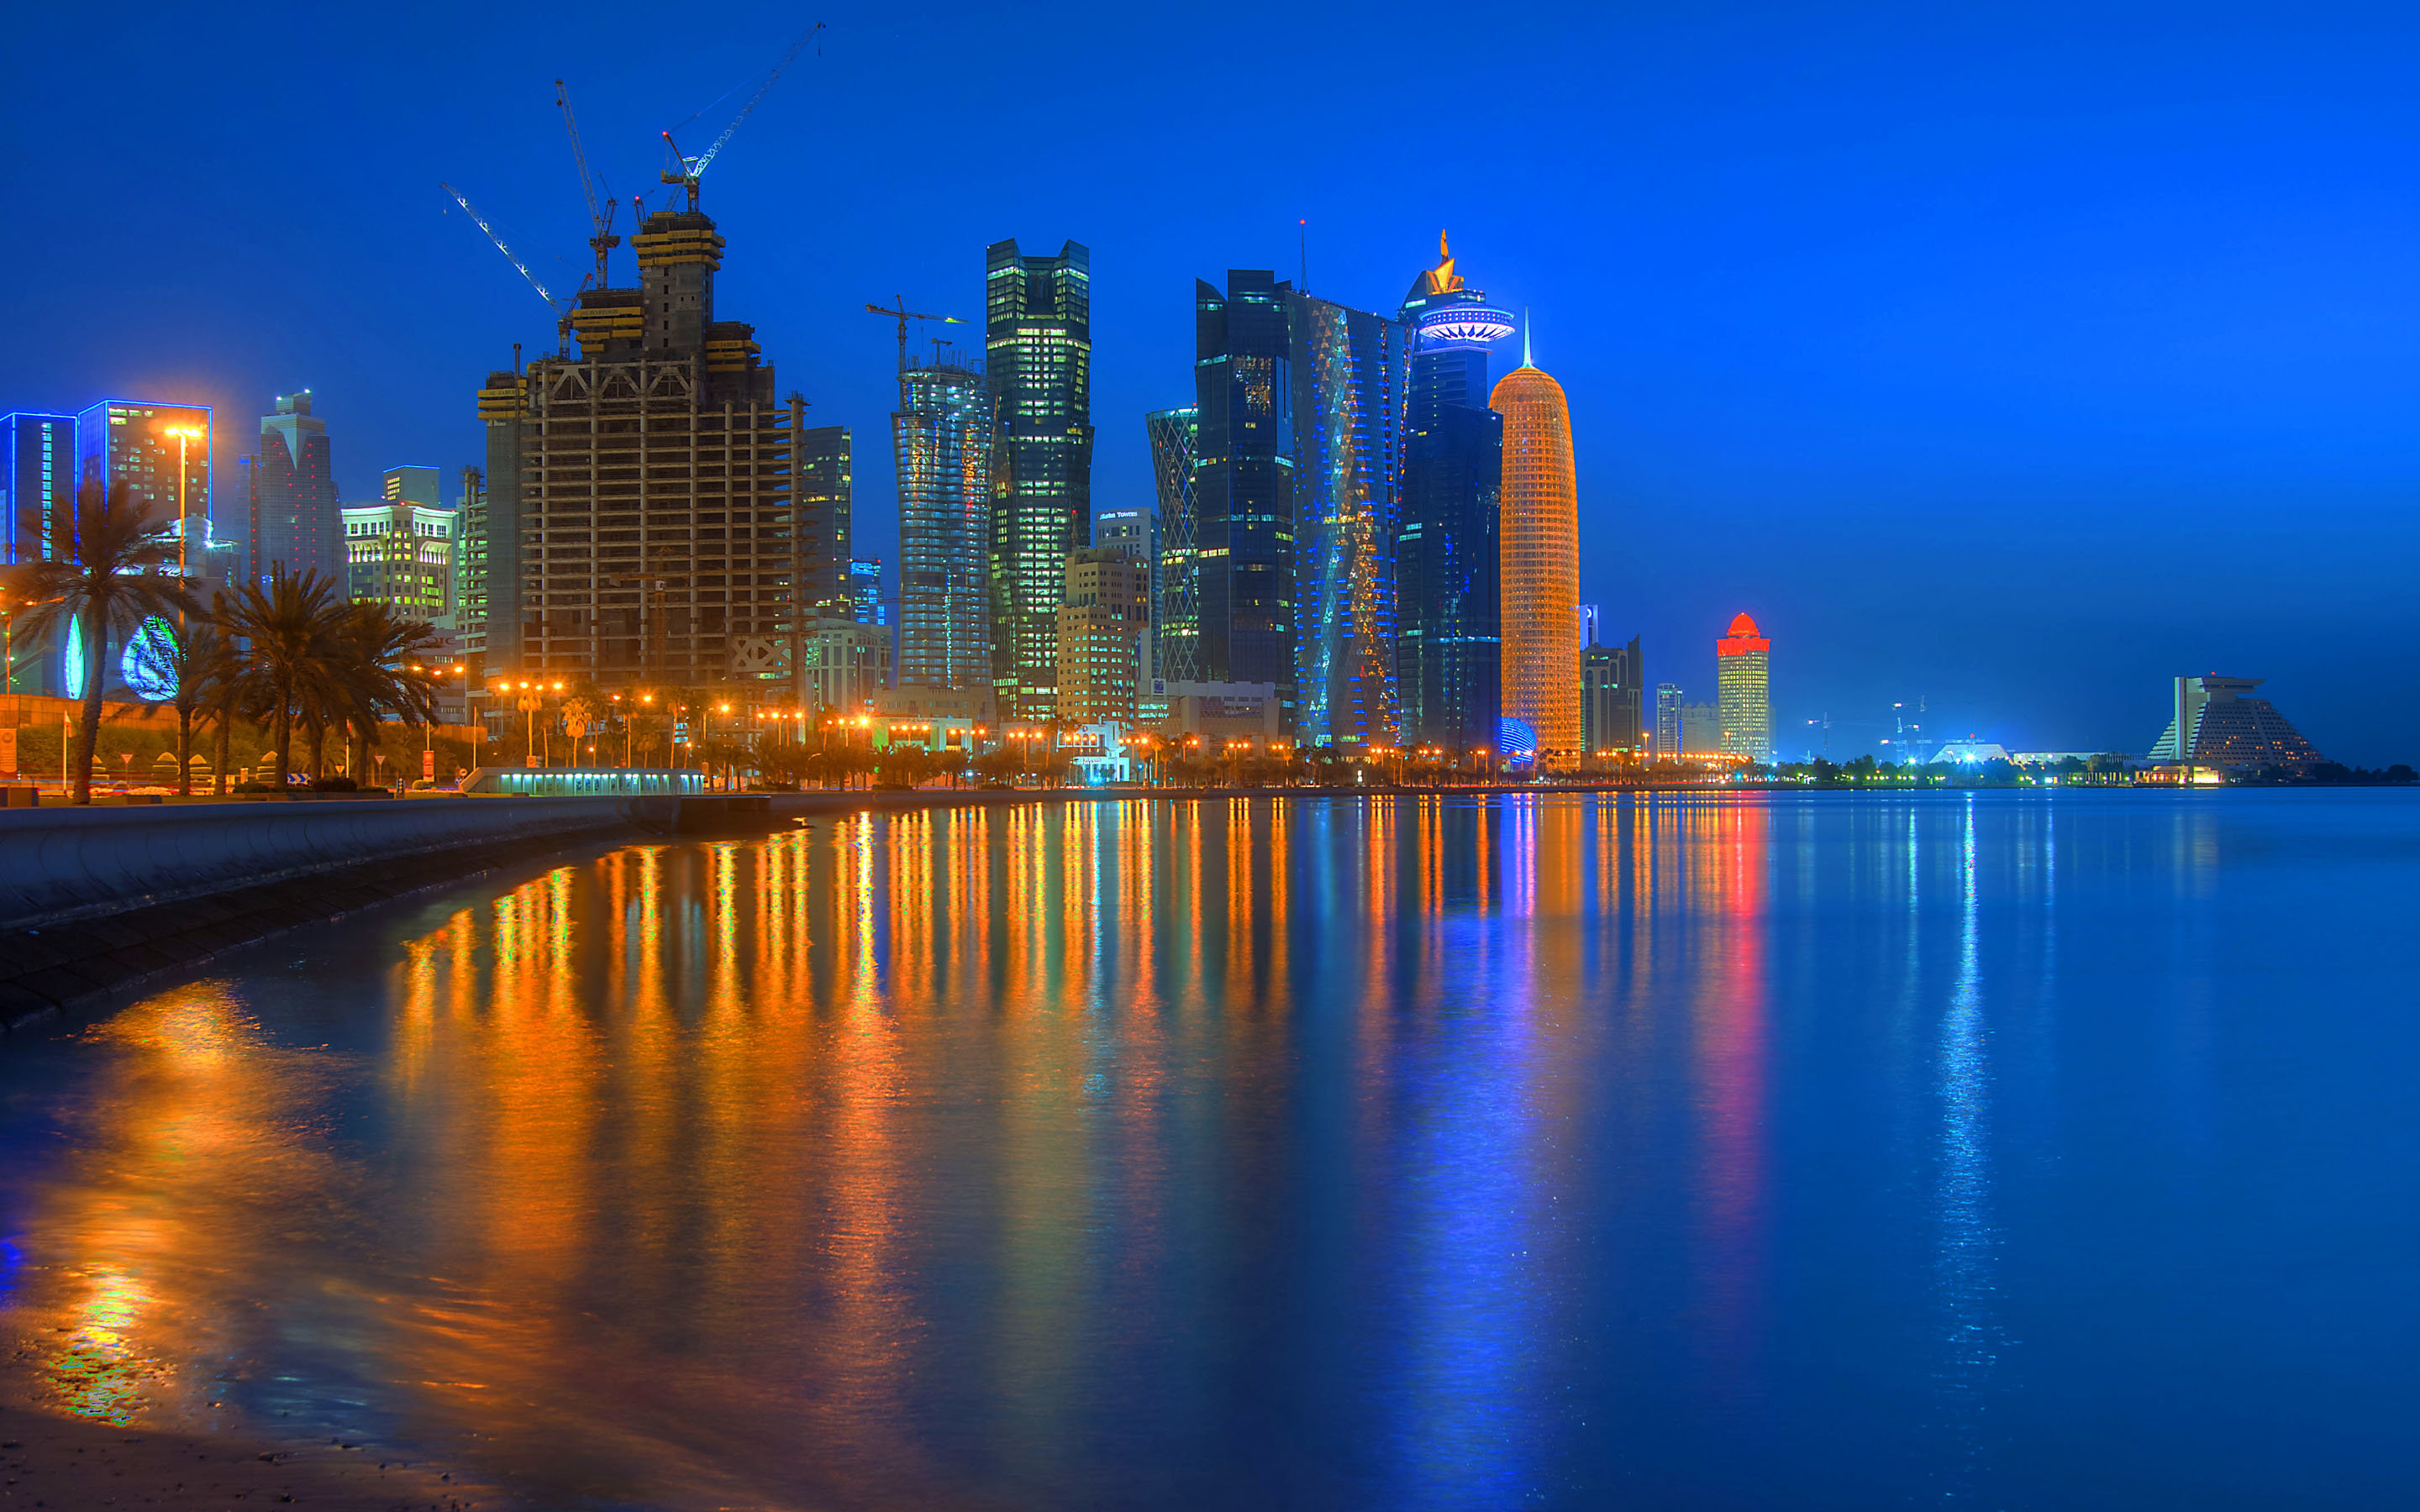 Free download Qatar wallpaper ID:484840 hd 2880x1800 for desktop